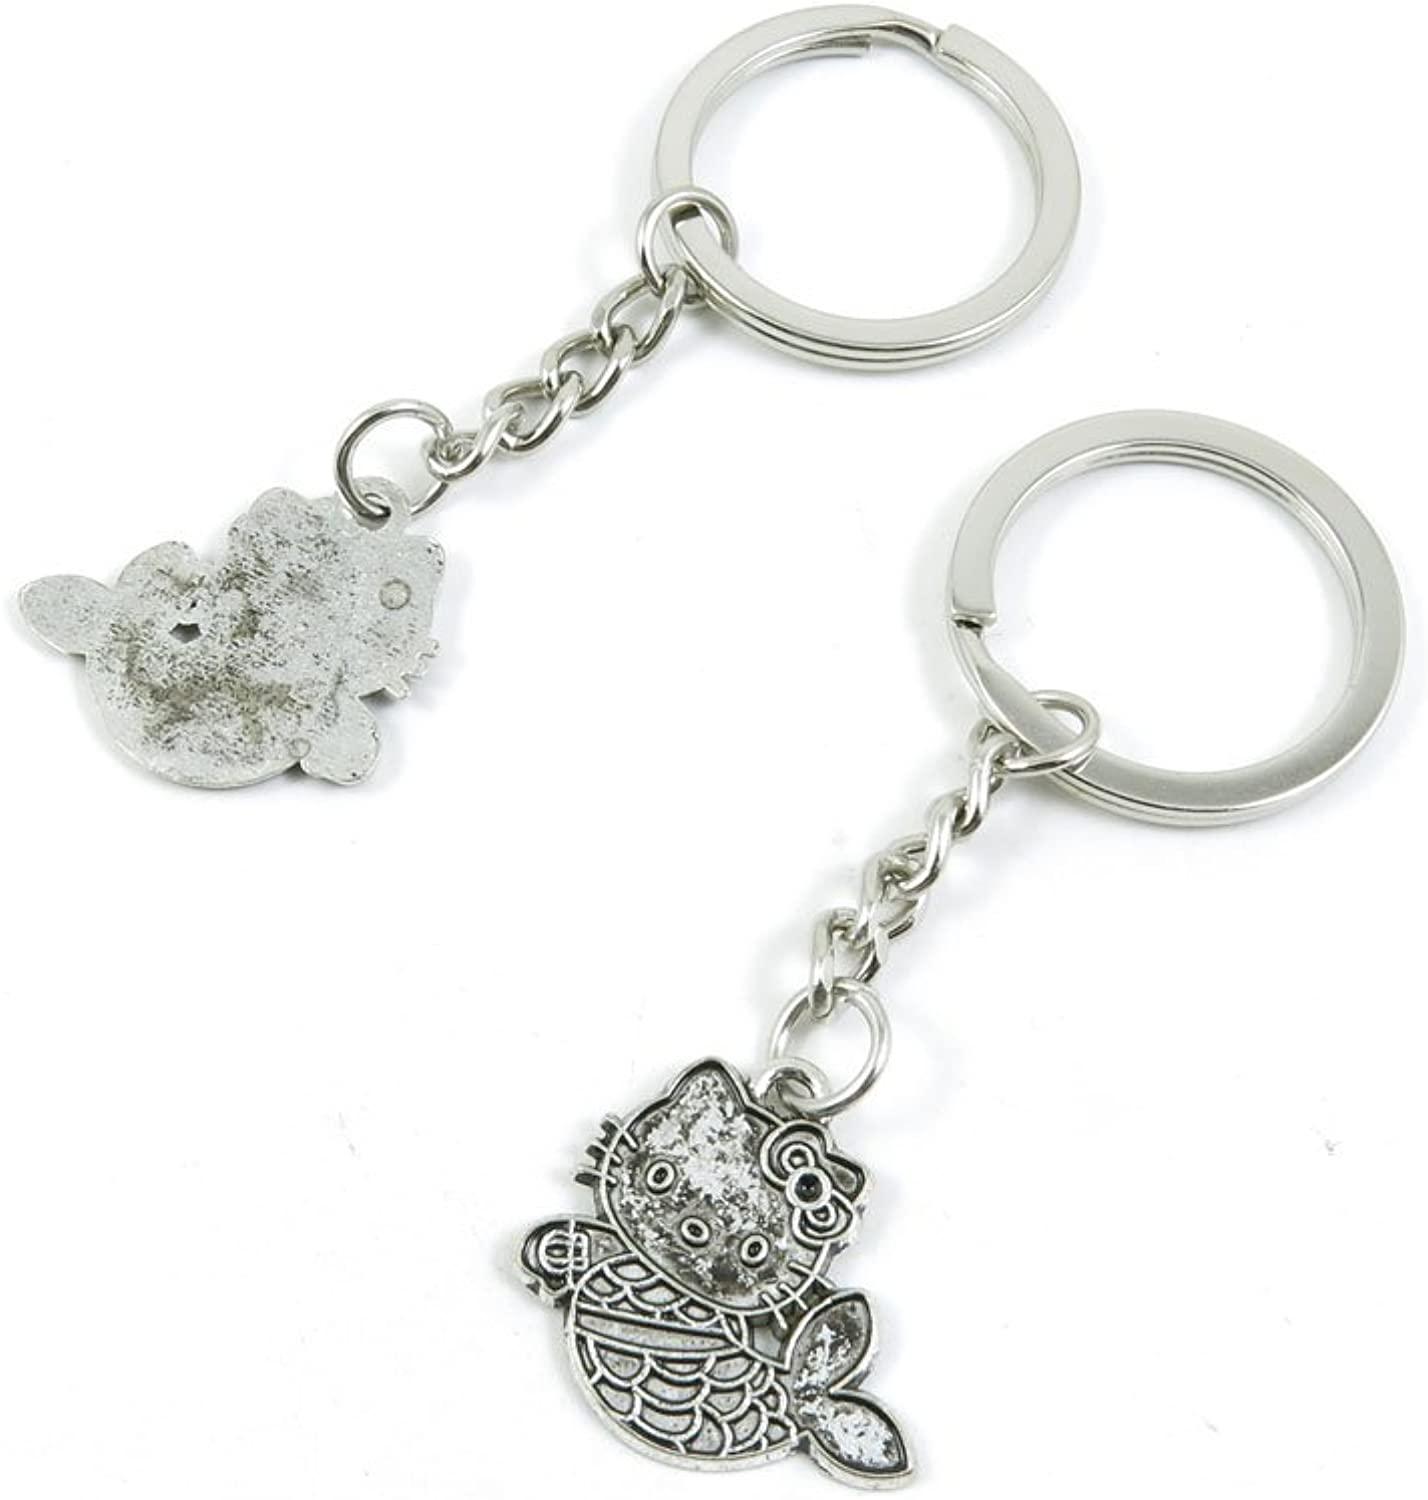 100 Pieces Keychain Keyring Door Car Key Chain Ring Tag Charms Bulk Supply Jewelry Making Clasp Findings G2BF8R Charming Kitty Mermaid